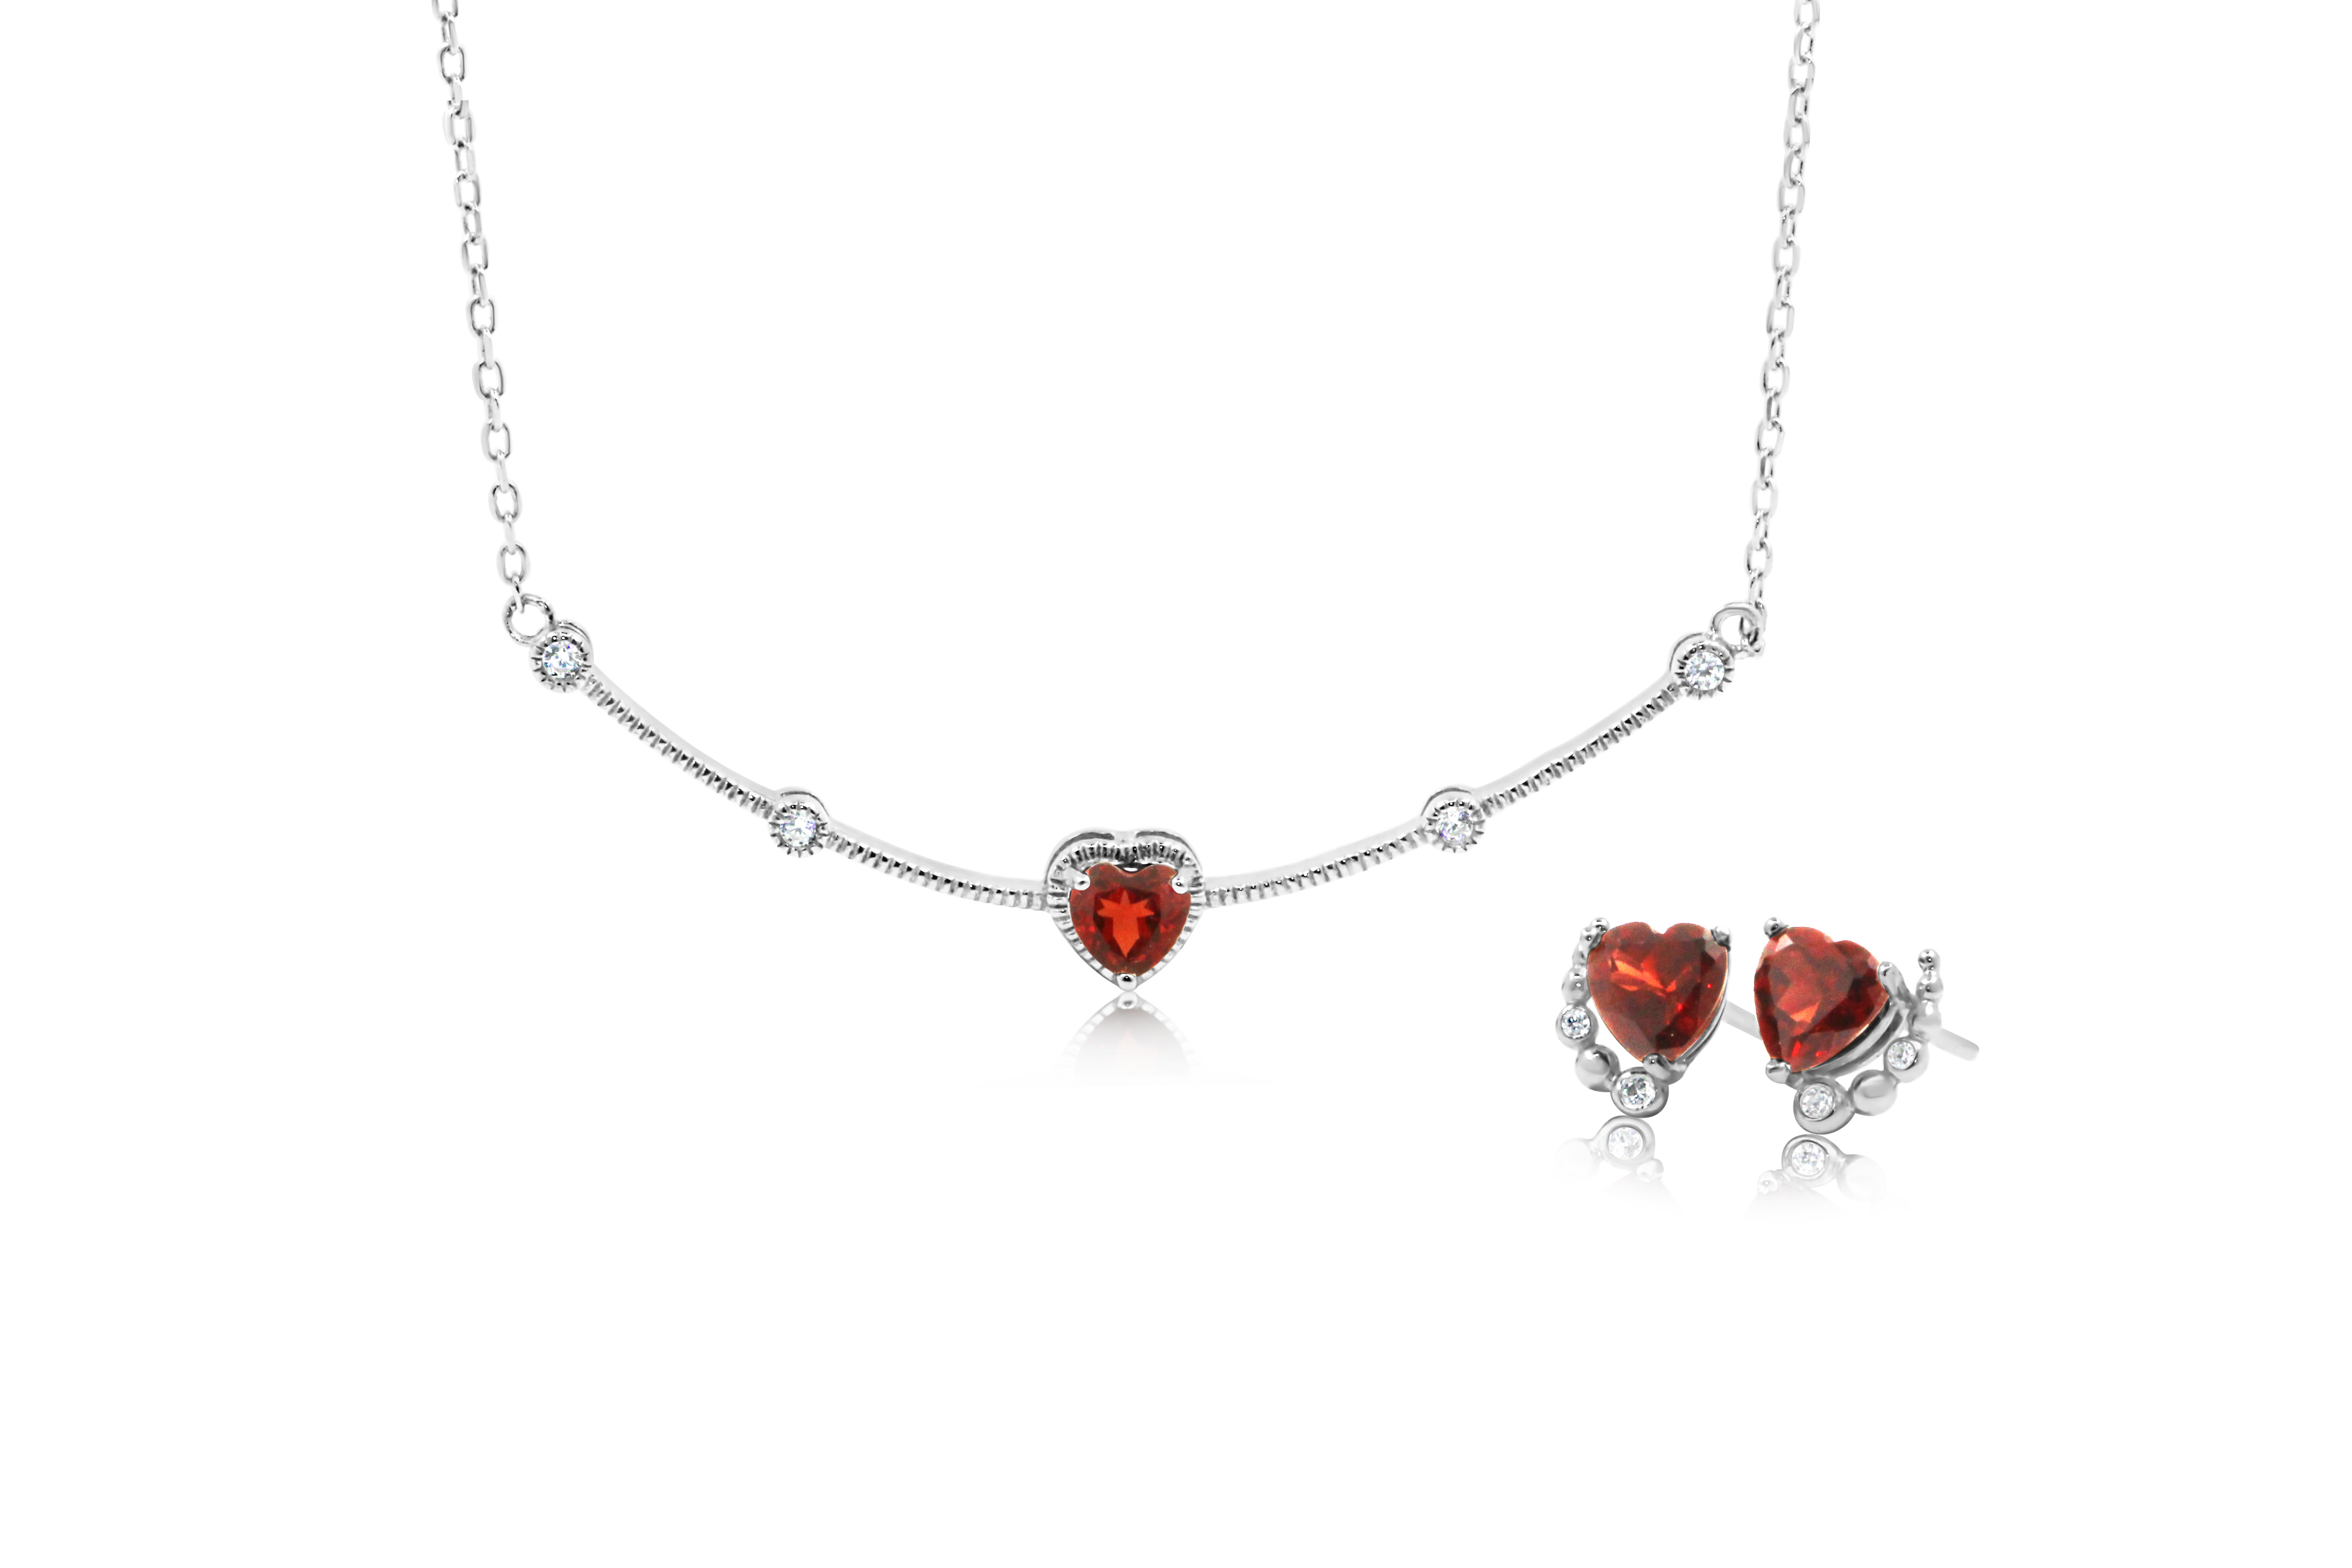 Numai-Unu Heart Garnet Necklace and Earrings Set